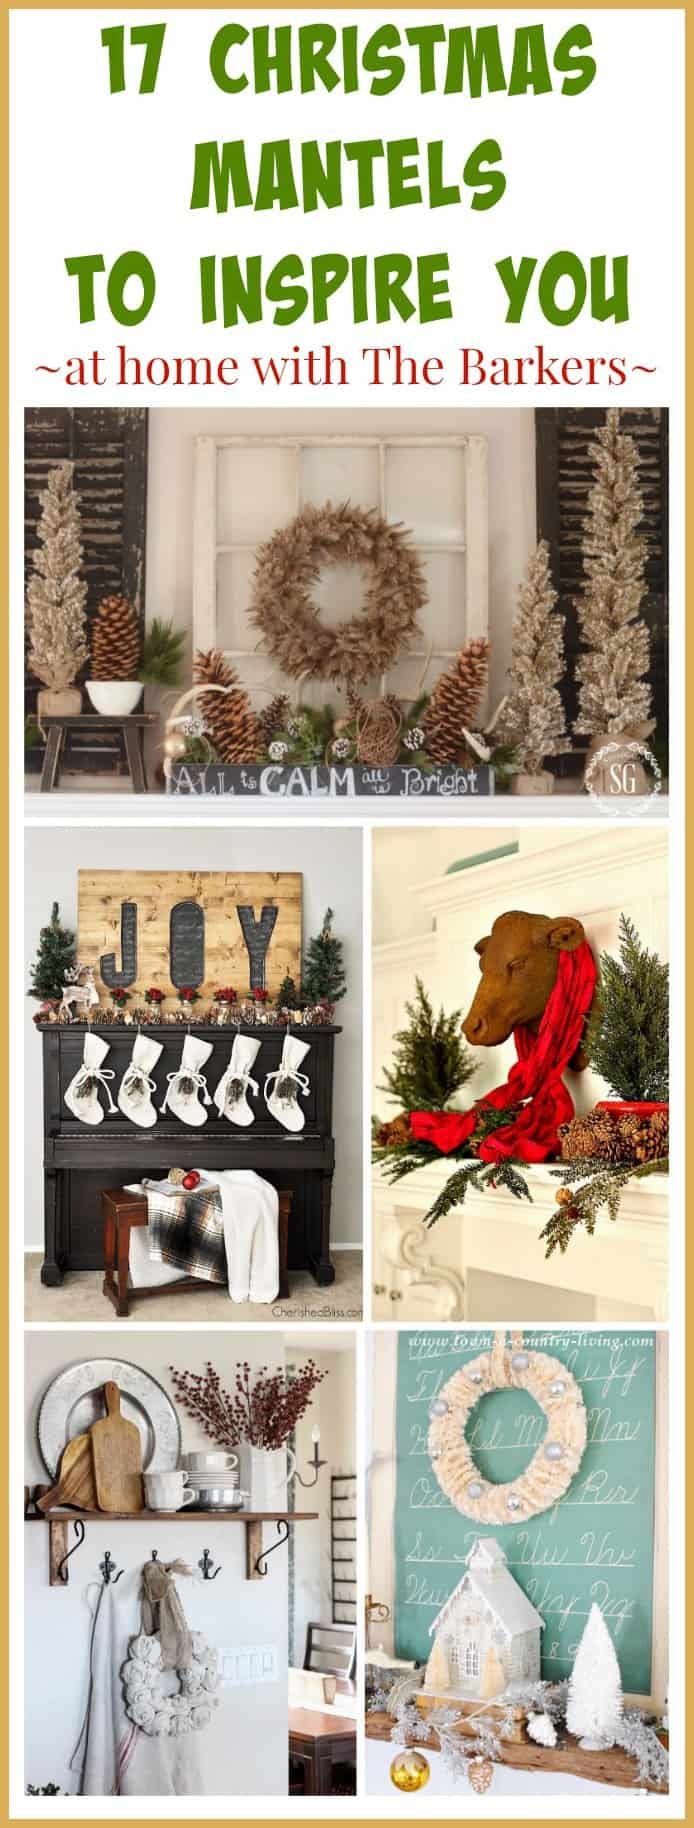 17 Christmas Mantels to Inspire You no matter what your decorating style is, something for everyone! / athomewiththebarkers.com